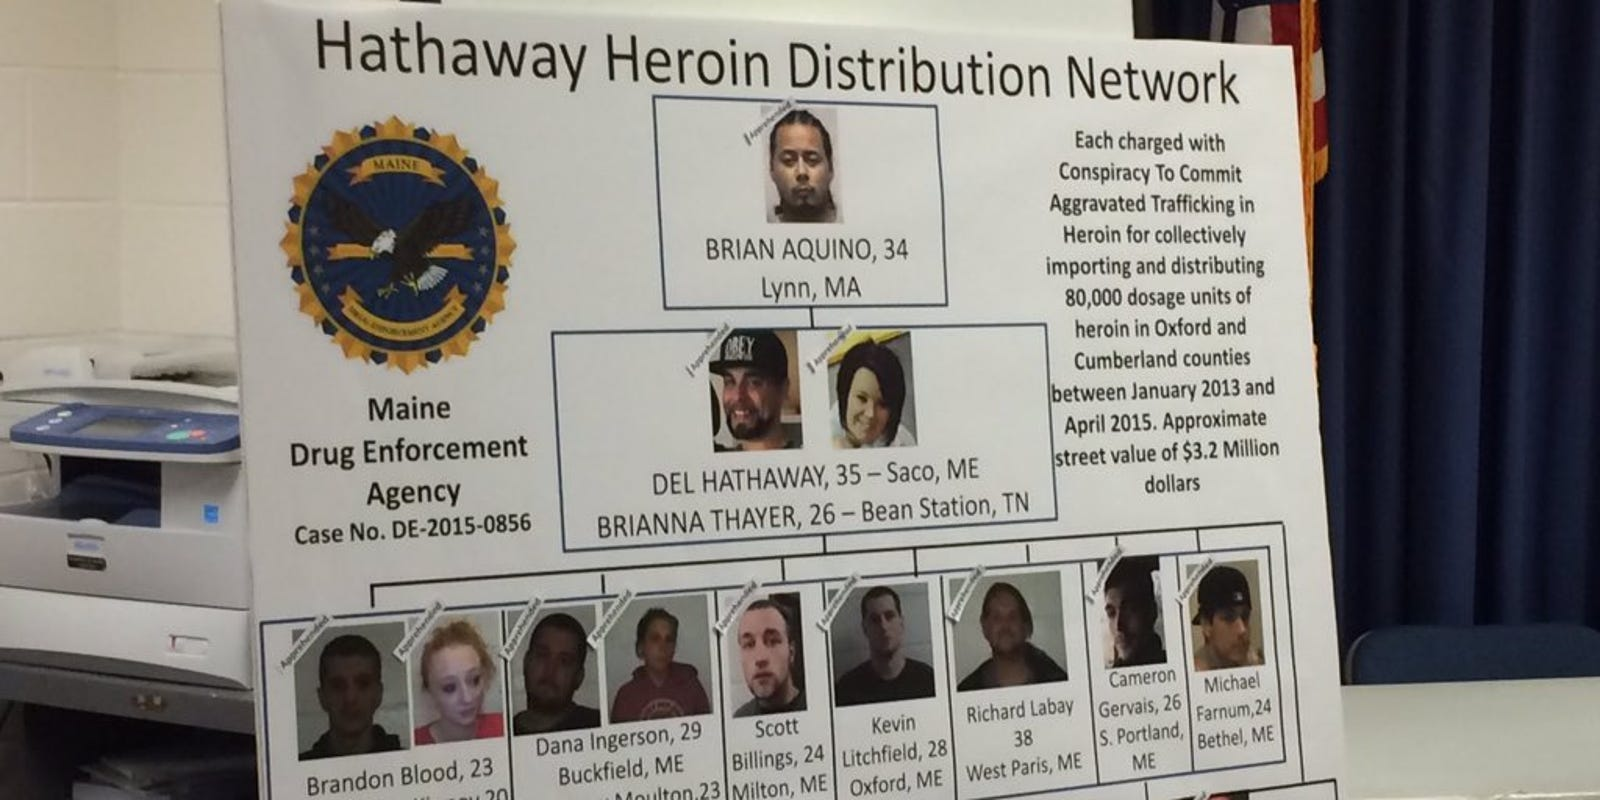 15 people indicted in $3 2 million heroin distribution ring